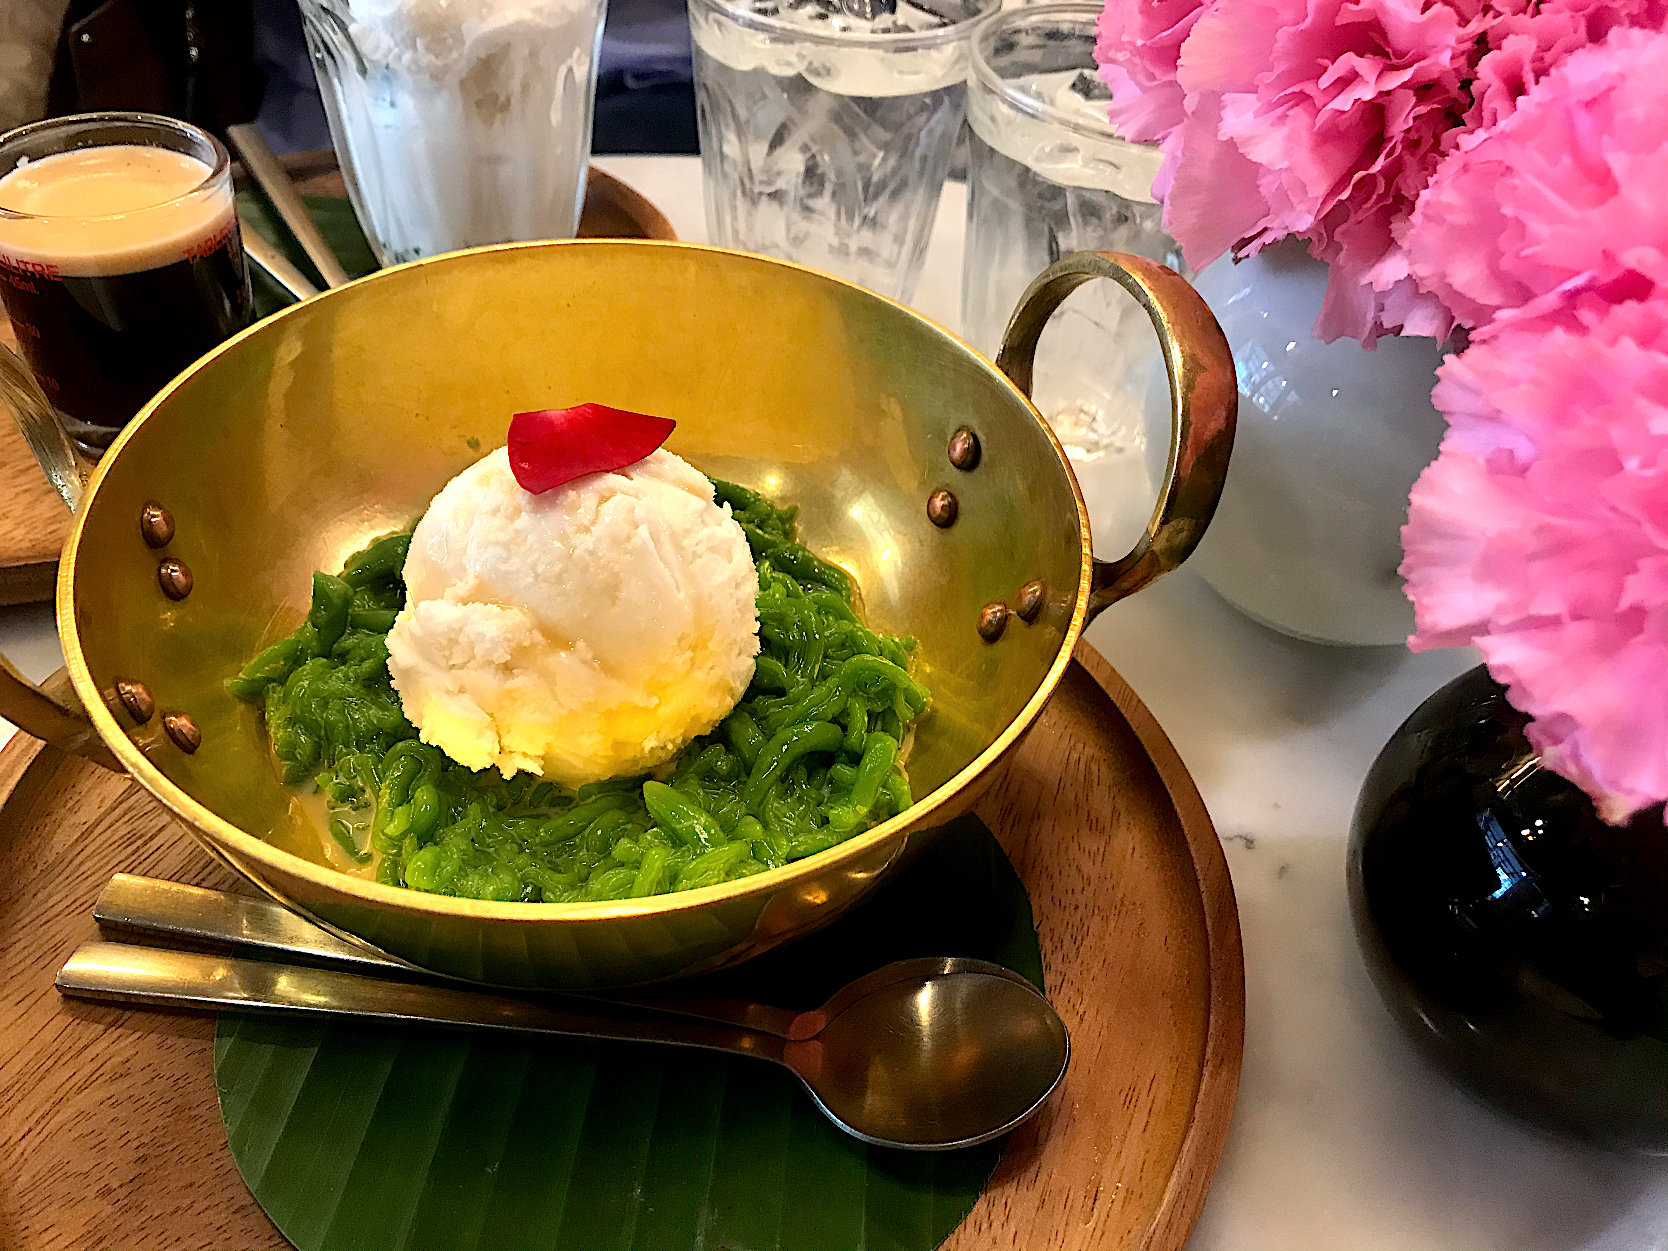 Lod Chong with coconut milk ice-cream